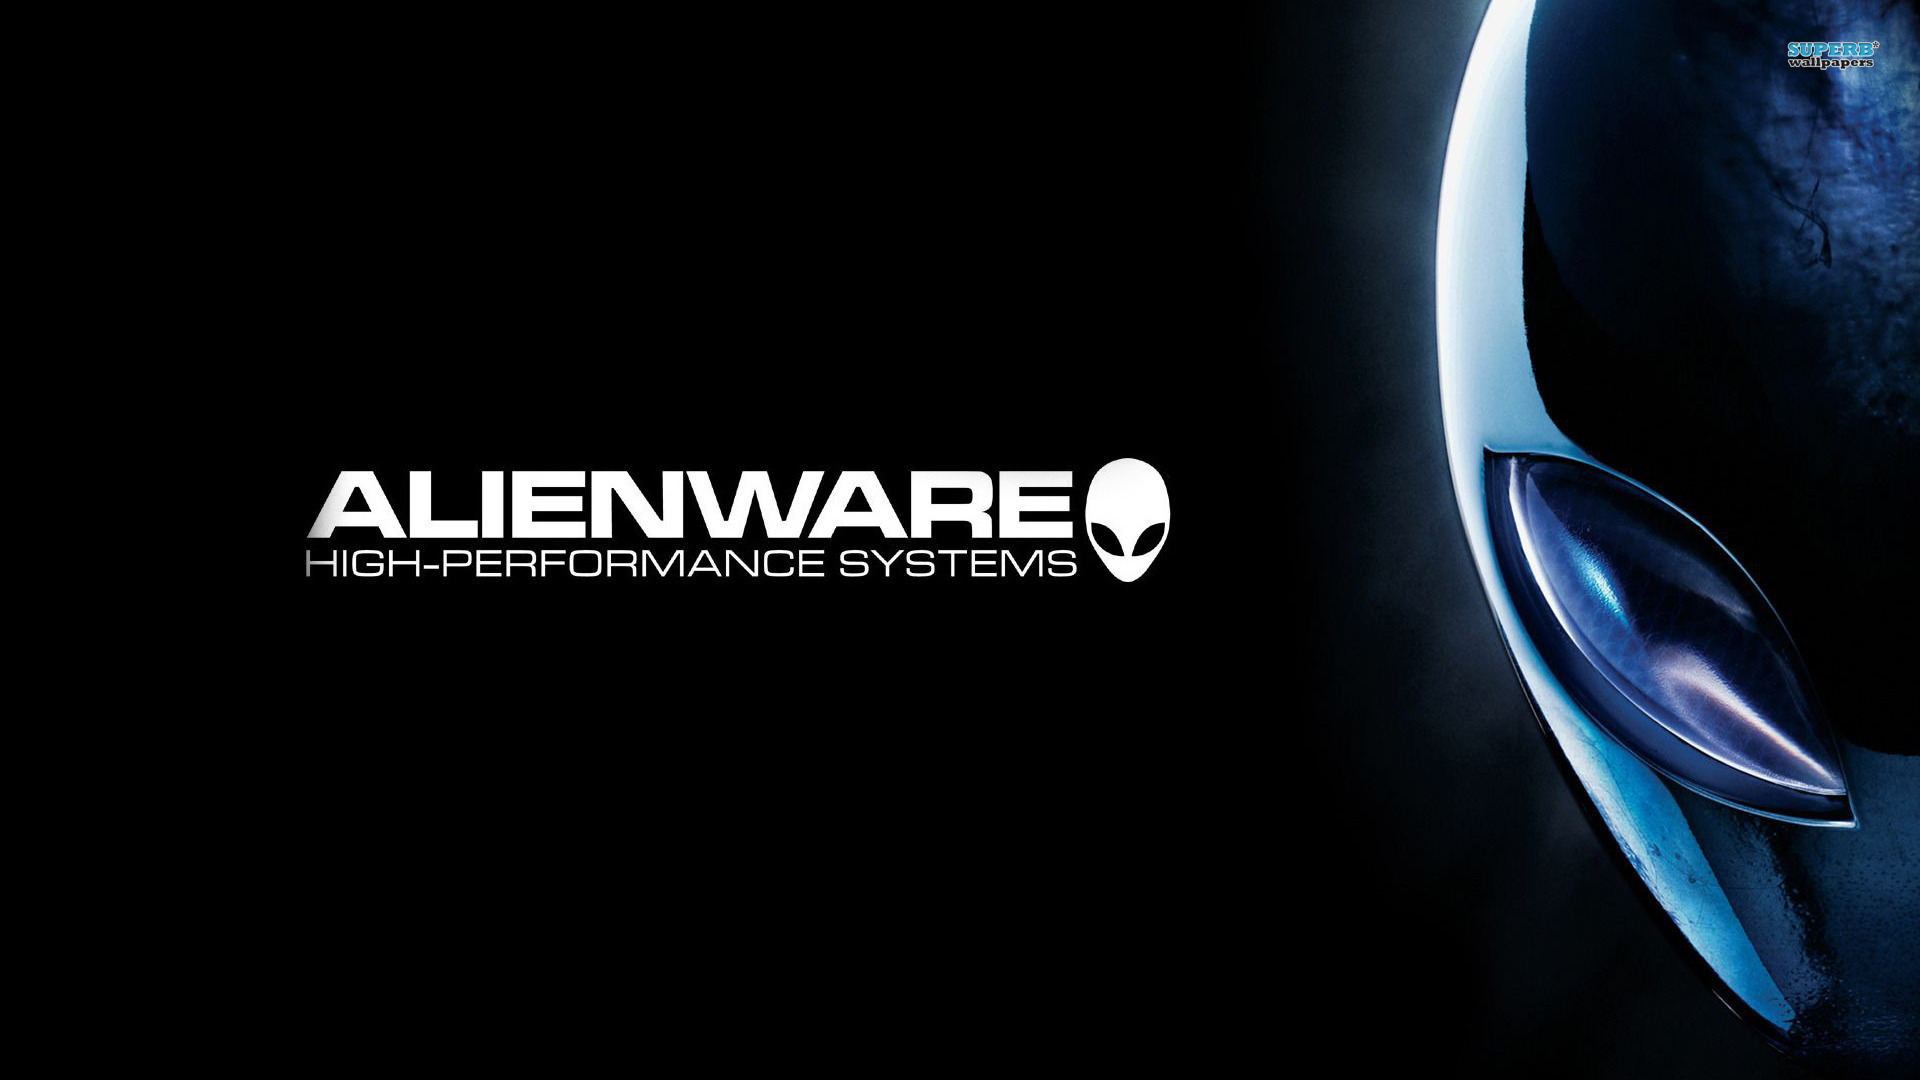 Alienware Wallpaper 1080p Wallpapersafari